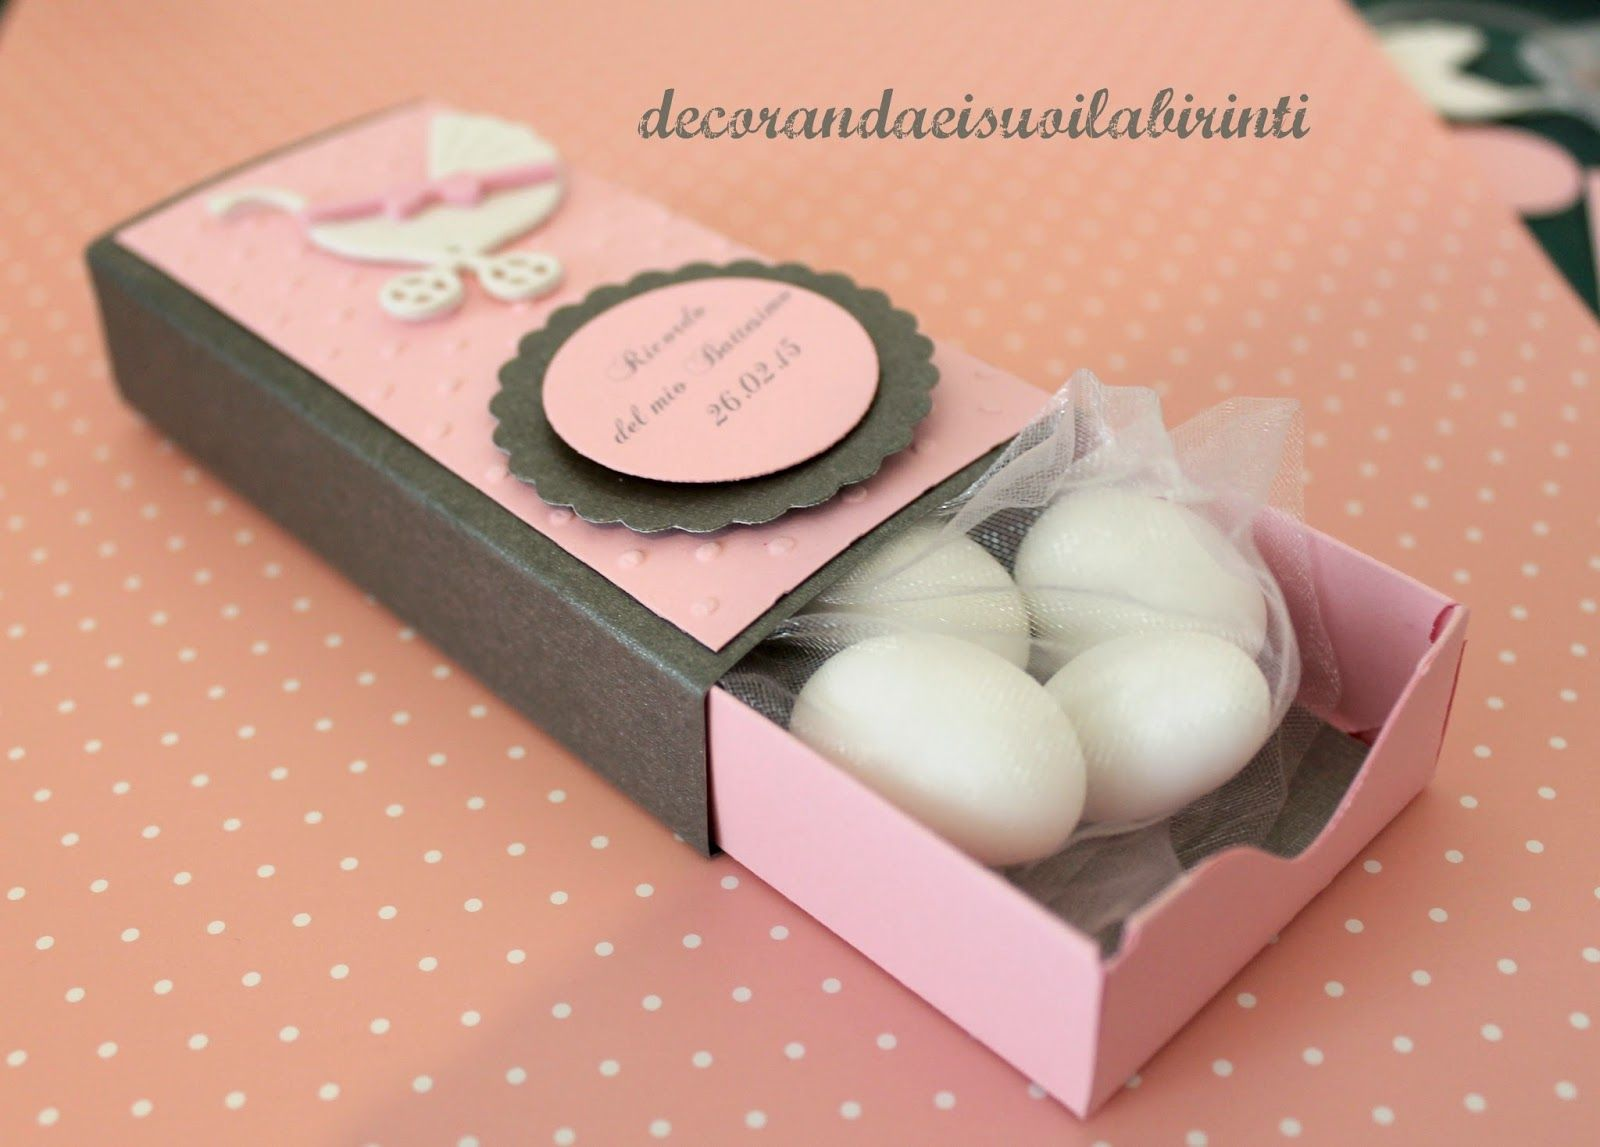 decorandaeisuoilabirinti | recuerdos | Pinterest | Box